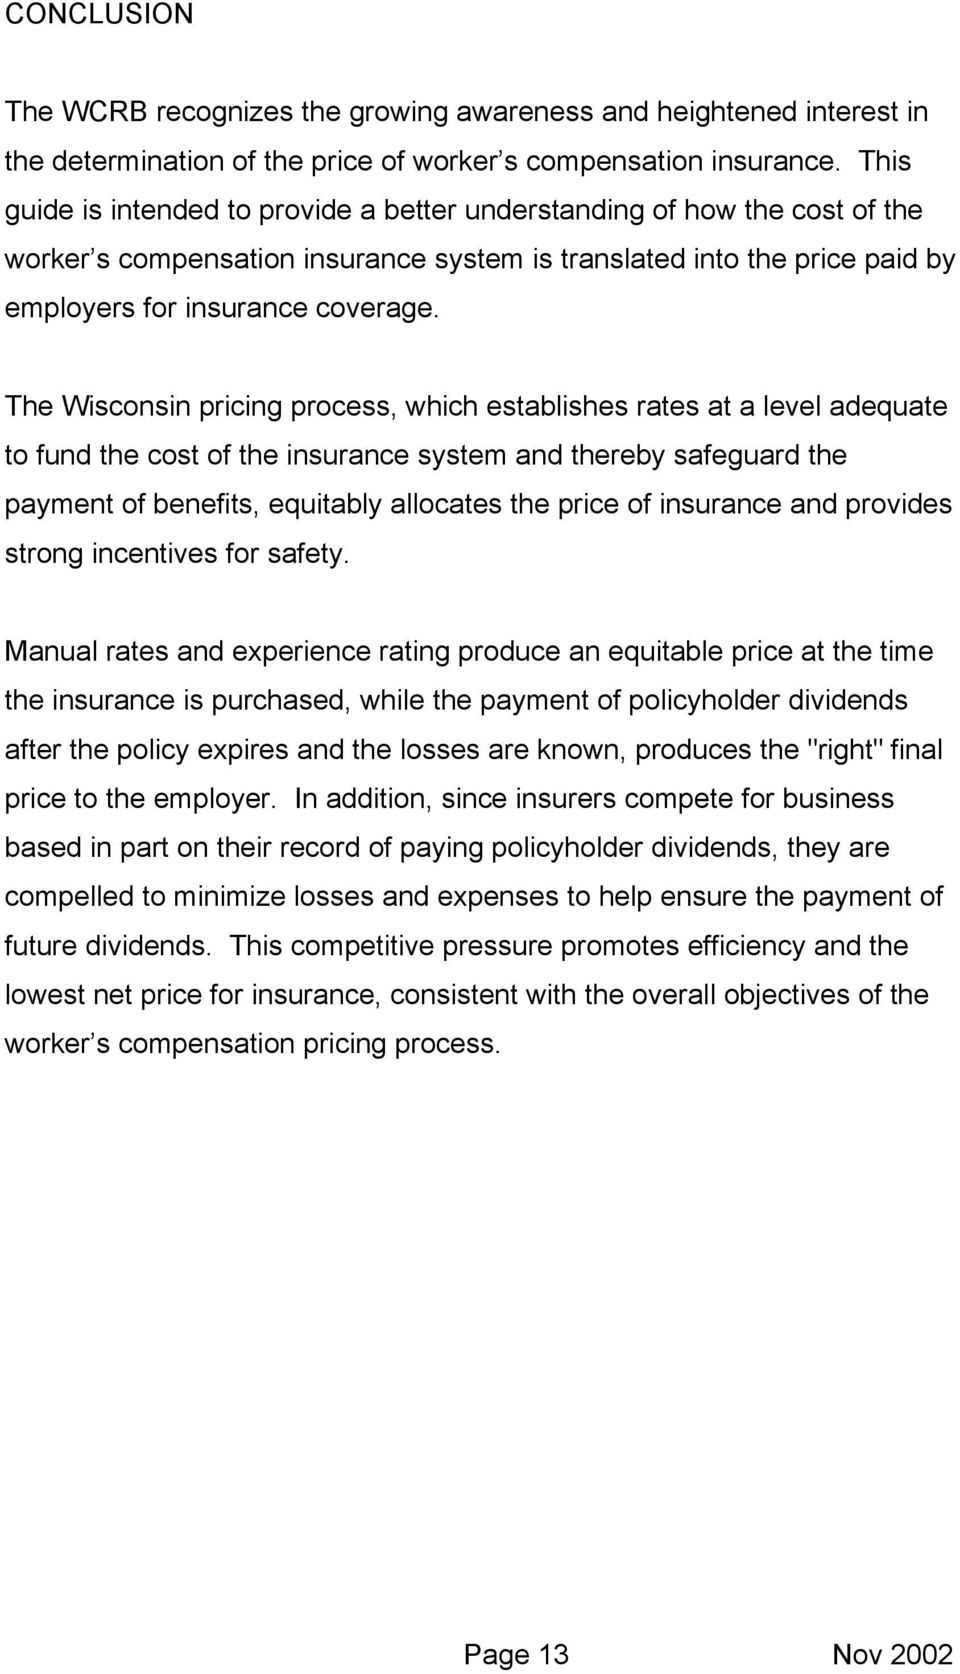 The Wisconsin pricing process, which establishes rates at a level adequate to fund the cost of the insurance system and thereby safeguard the payment of benefits, equitably allocates the price of